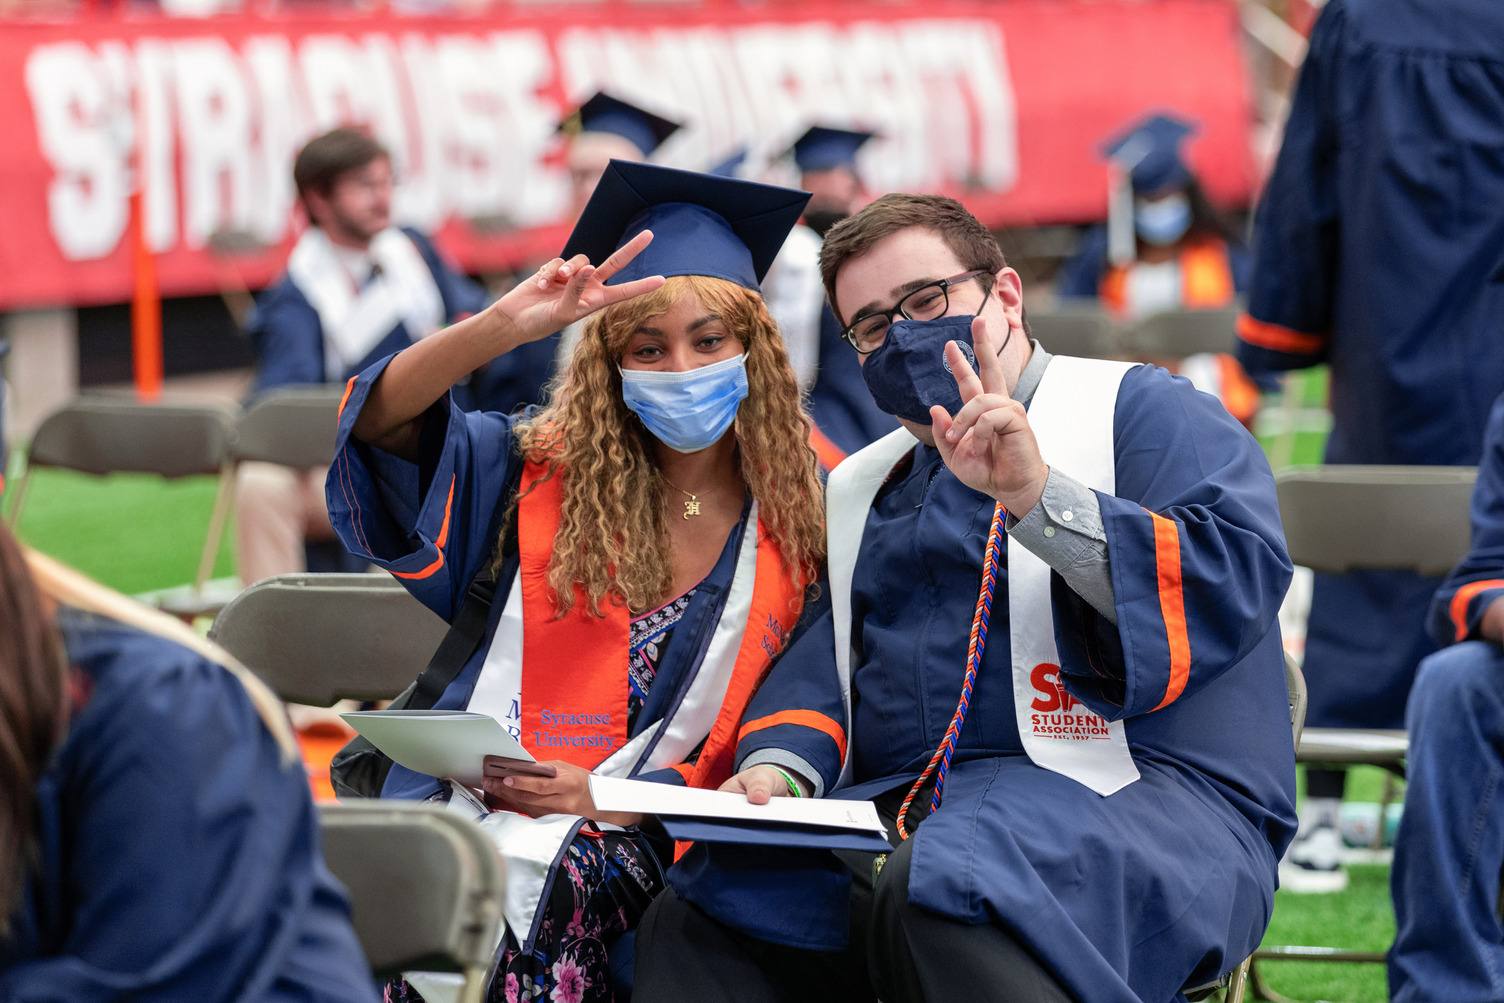 two students hold up peace fingers at Commencement 2021